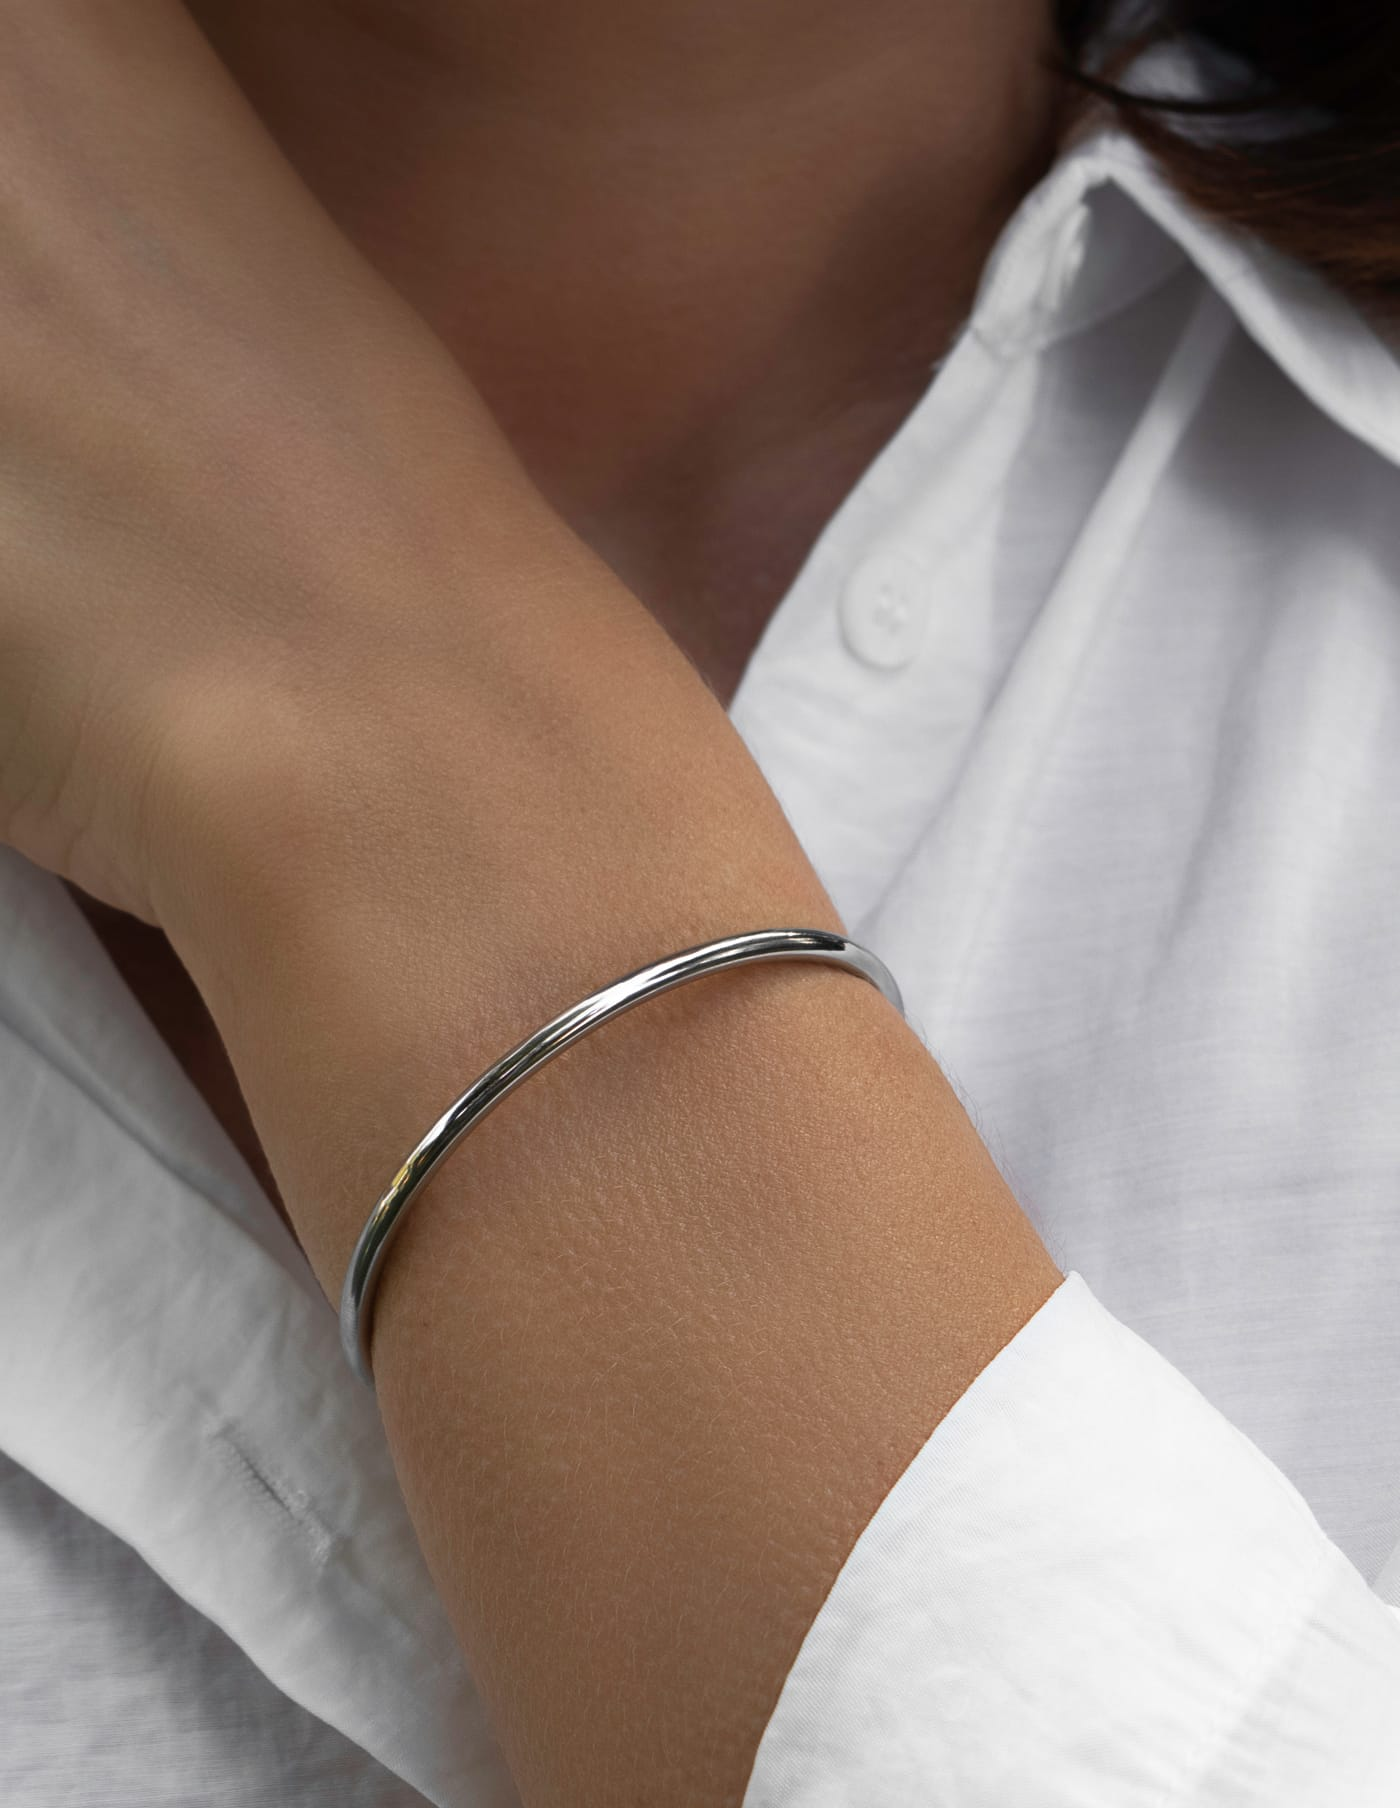 Simple Silver Bangle, Forever Lasting